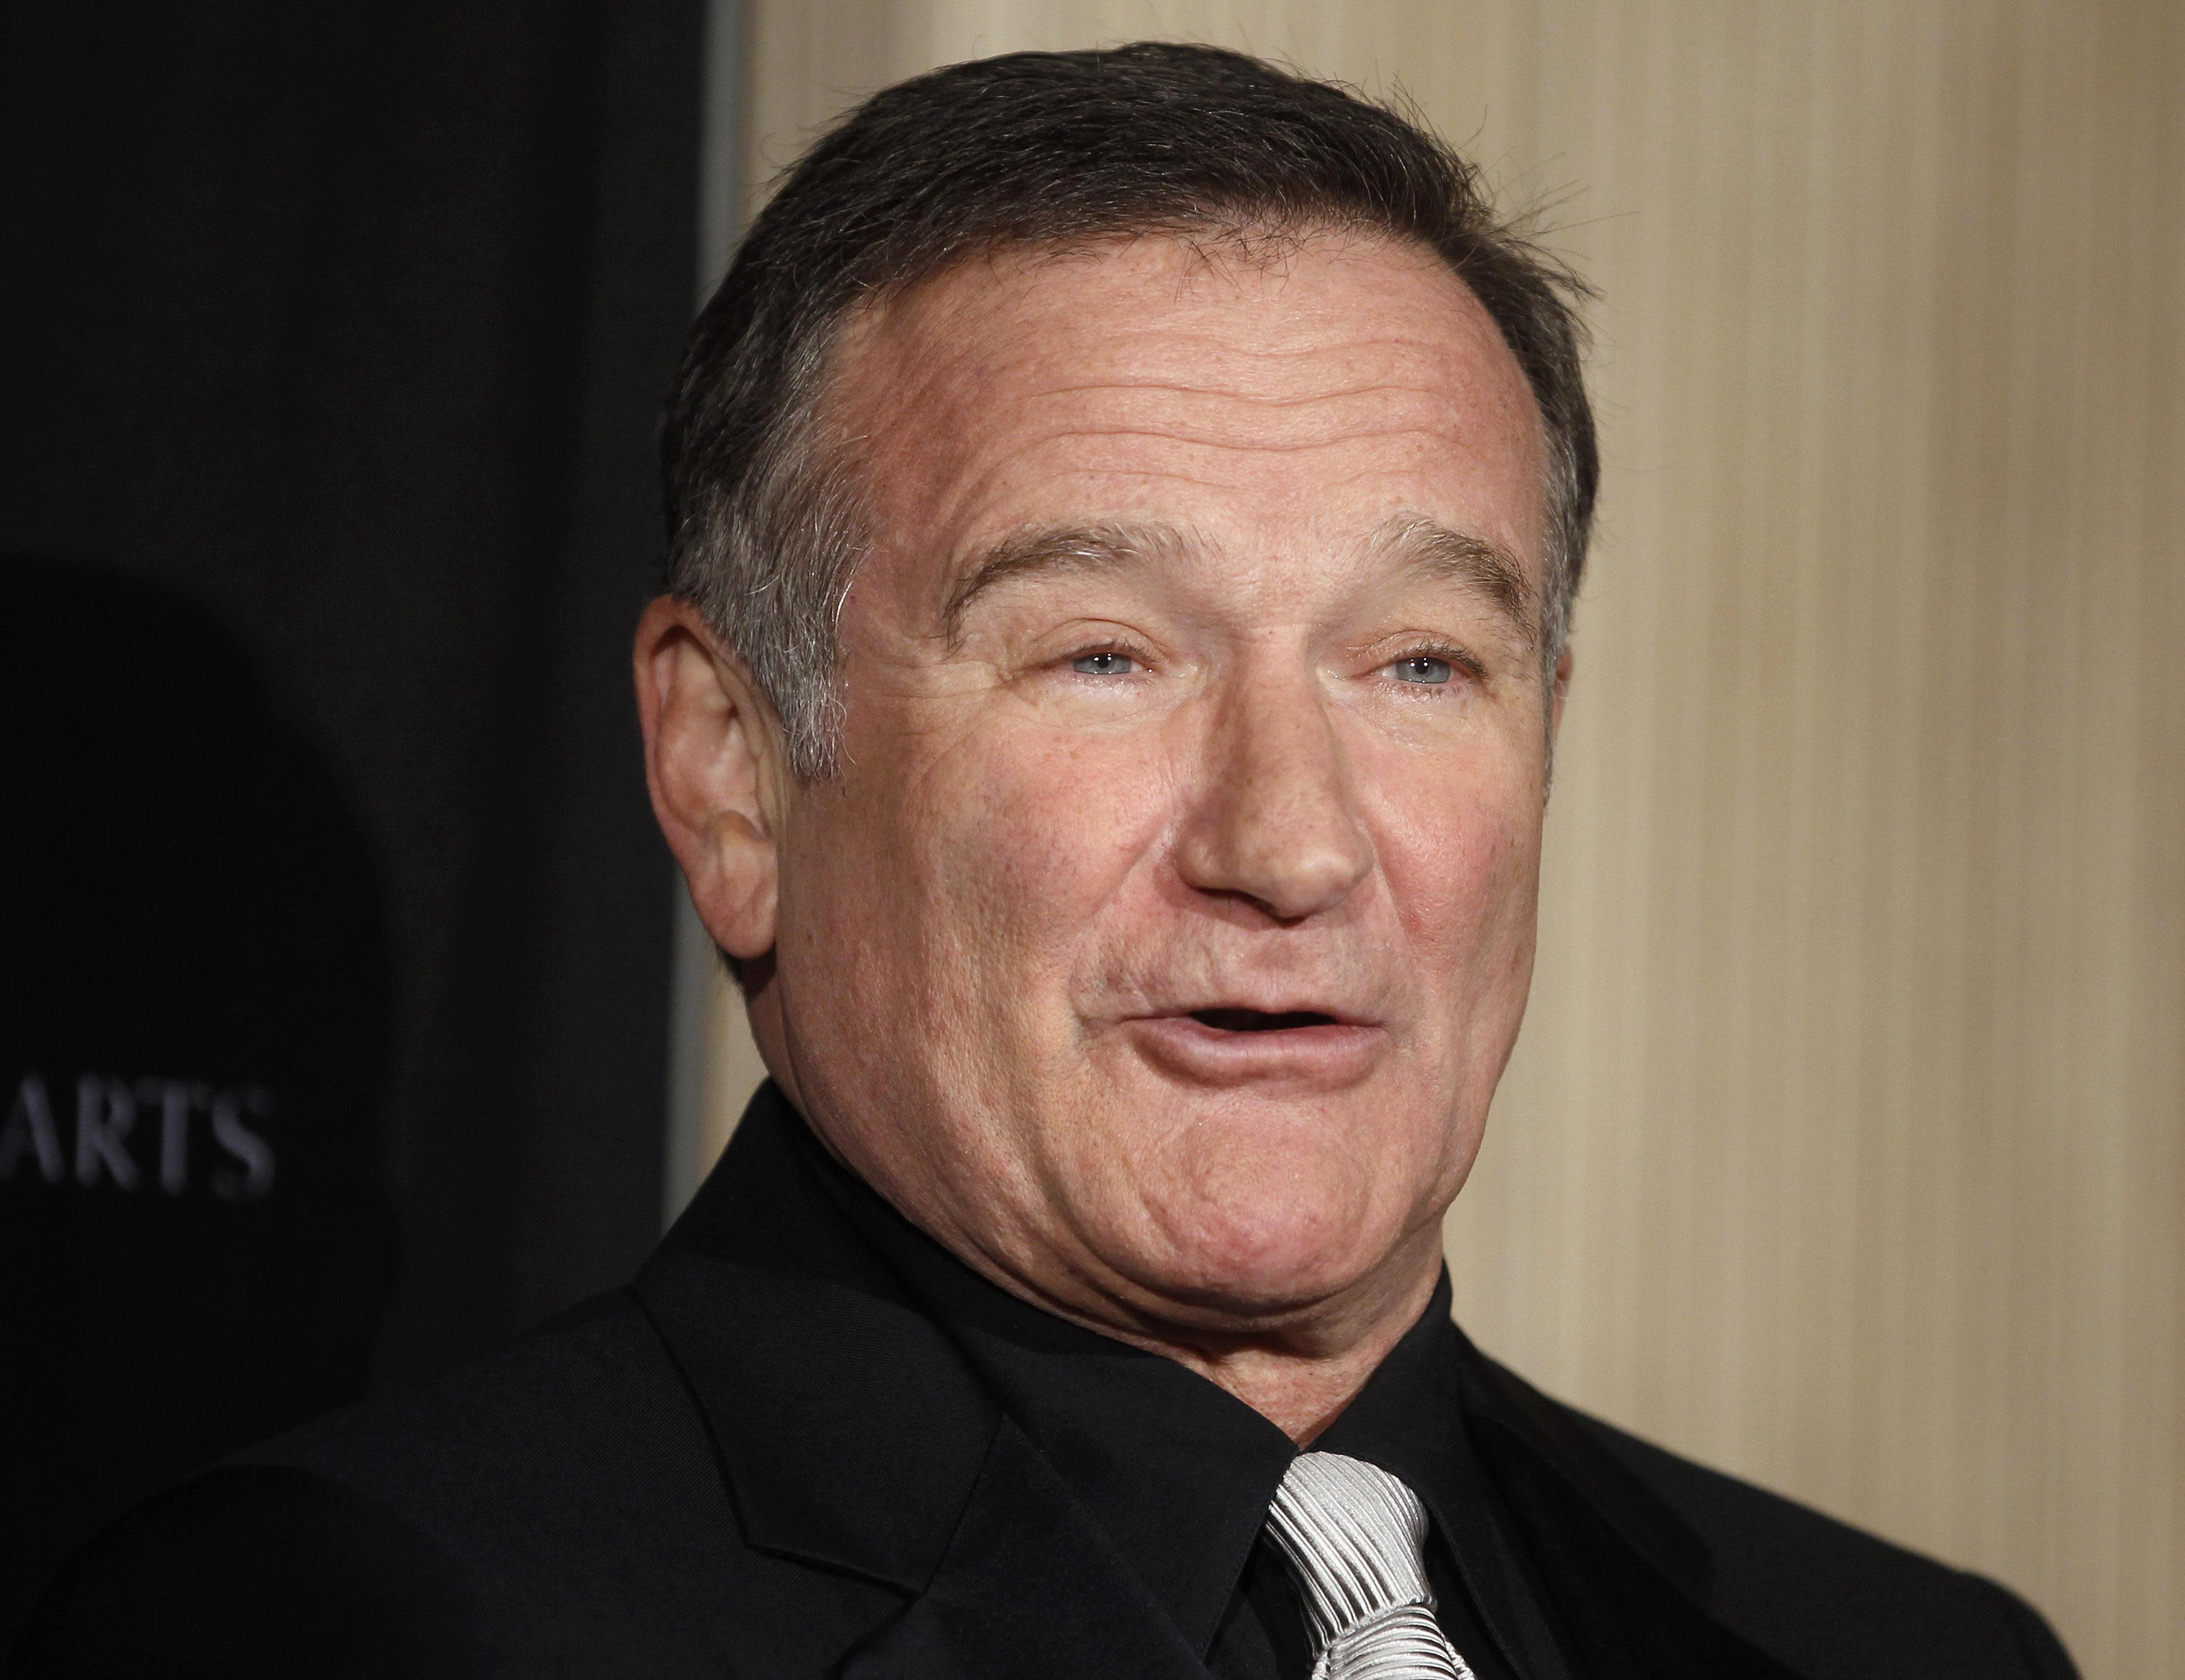 File photo of Robin Williams as he arrives at the British Academy of Film and Television Arts Los Angeles Britannia Awards in Beverly Hills